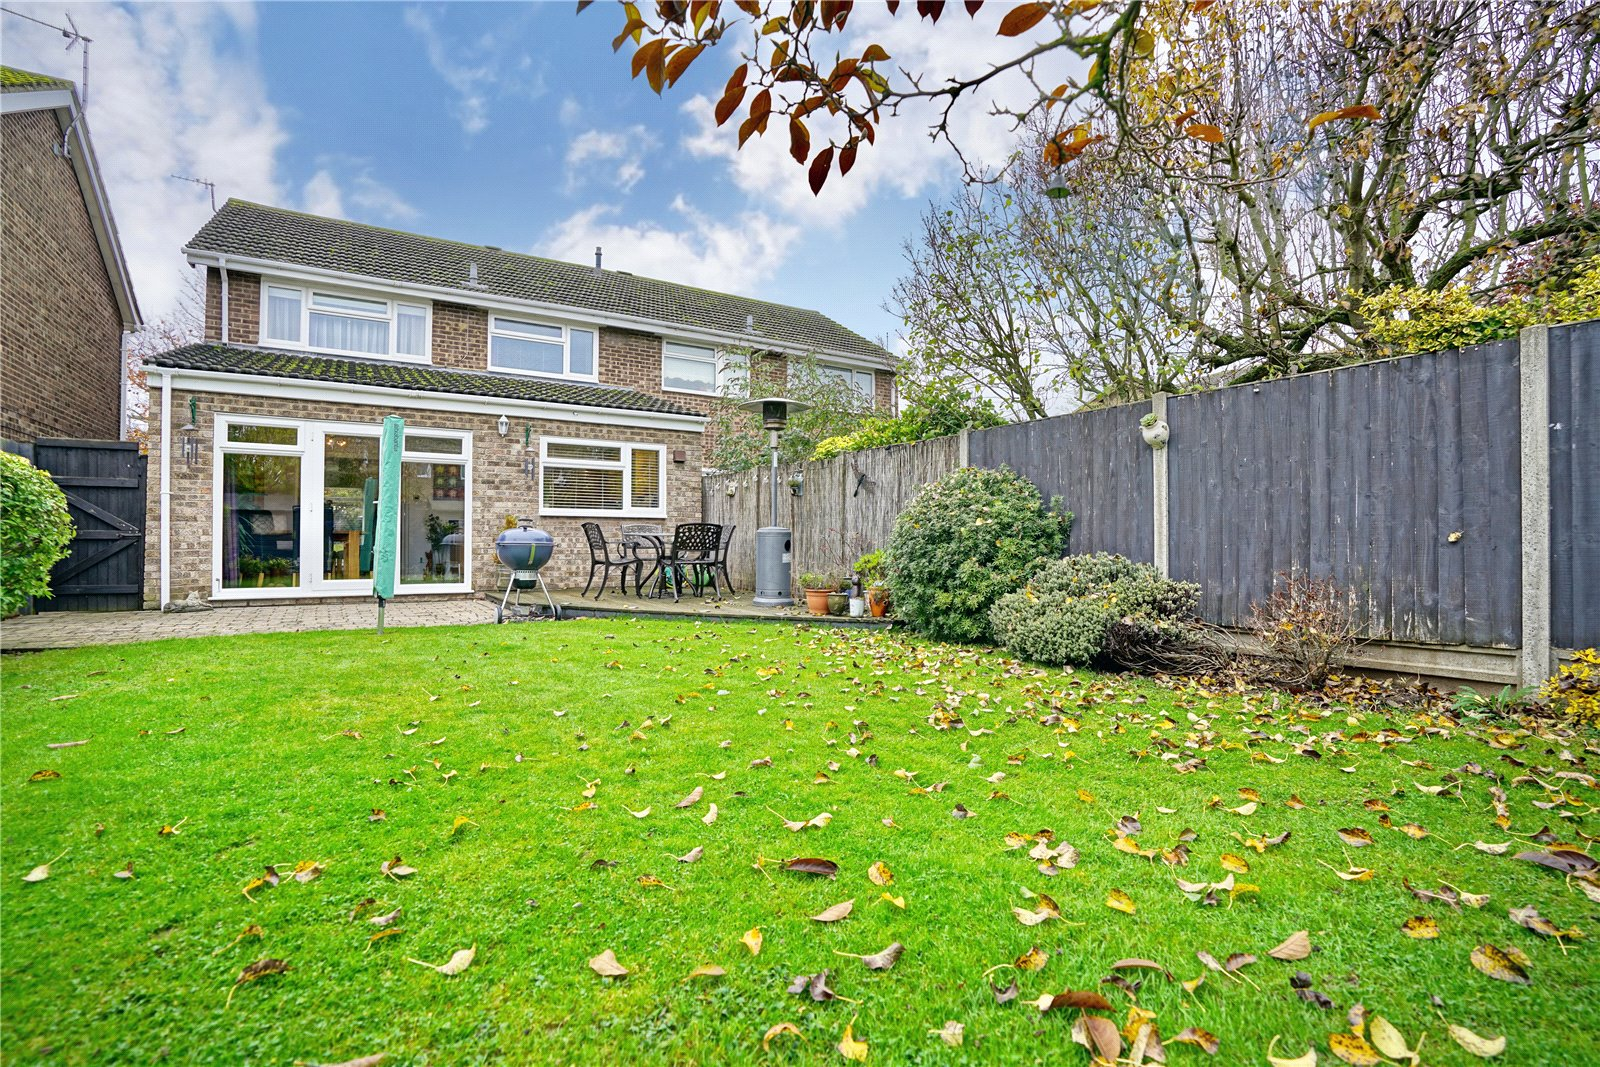 3 bed house for sale in Gainsborough Avenue, Eaton Ford  - Property Image 8